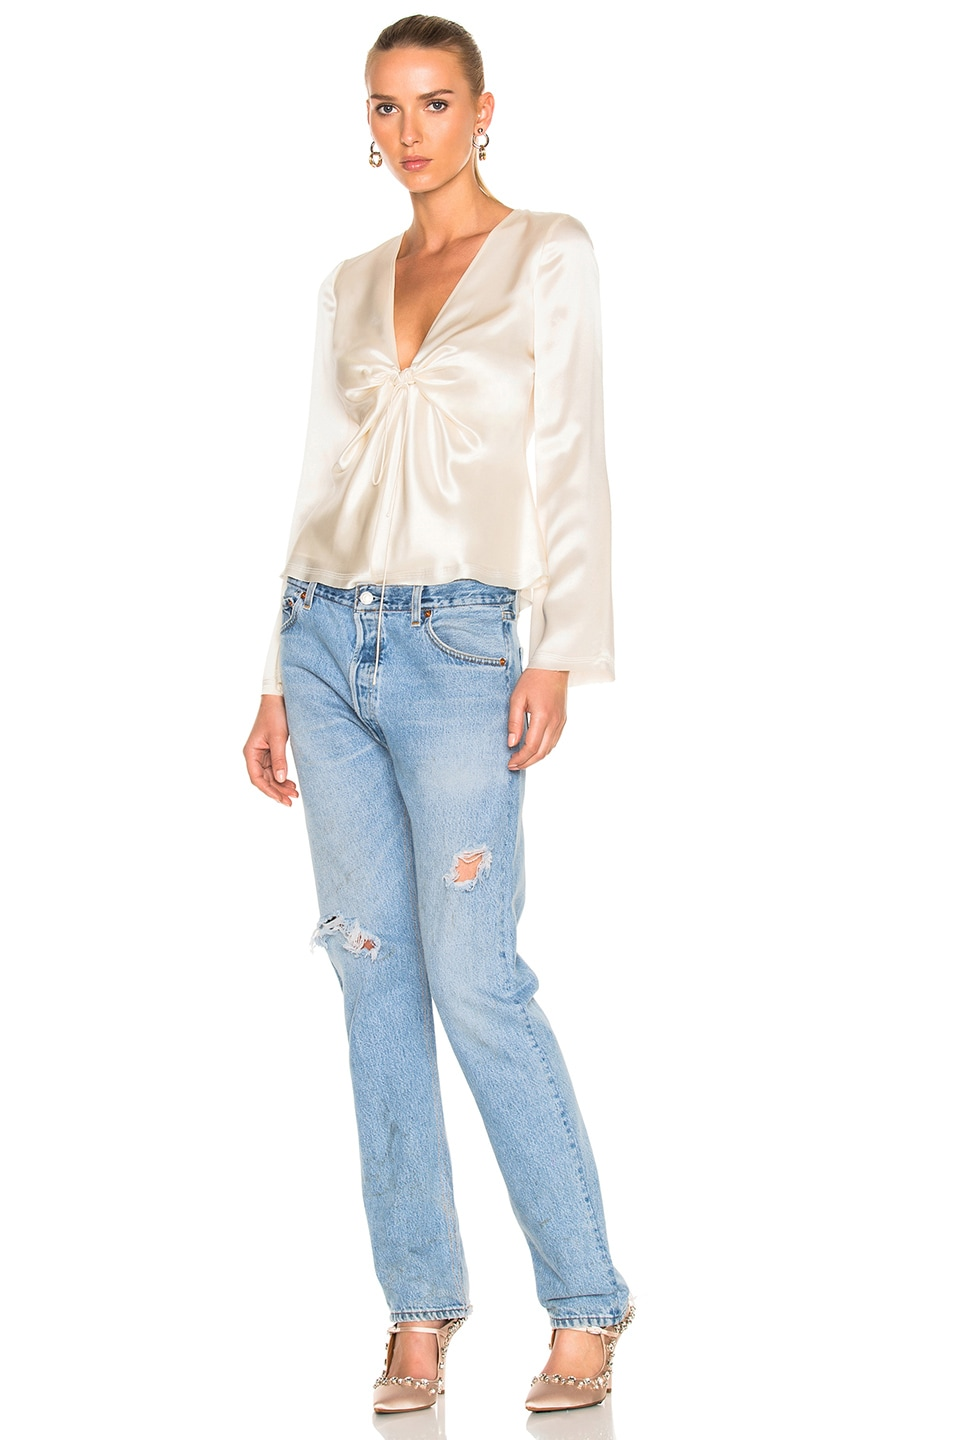 Image 5 of T by Alexander Wang Silk Charmeuse Tie Knot Long Sleeve Top in Ivory